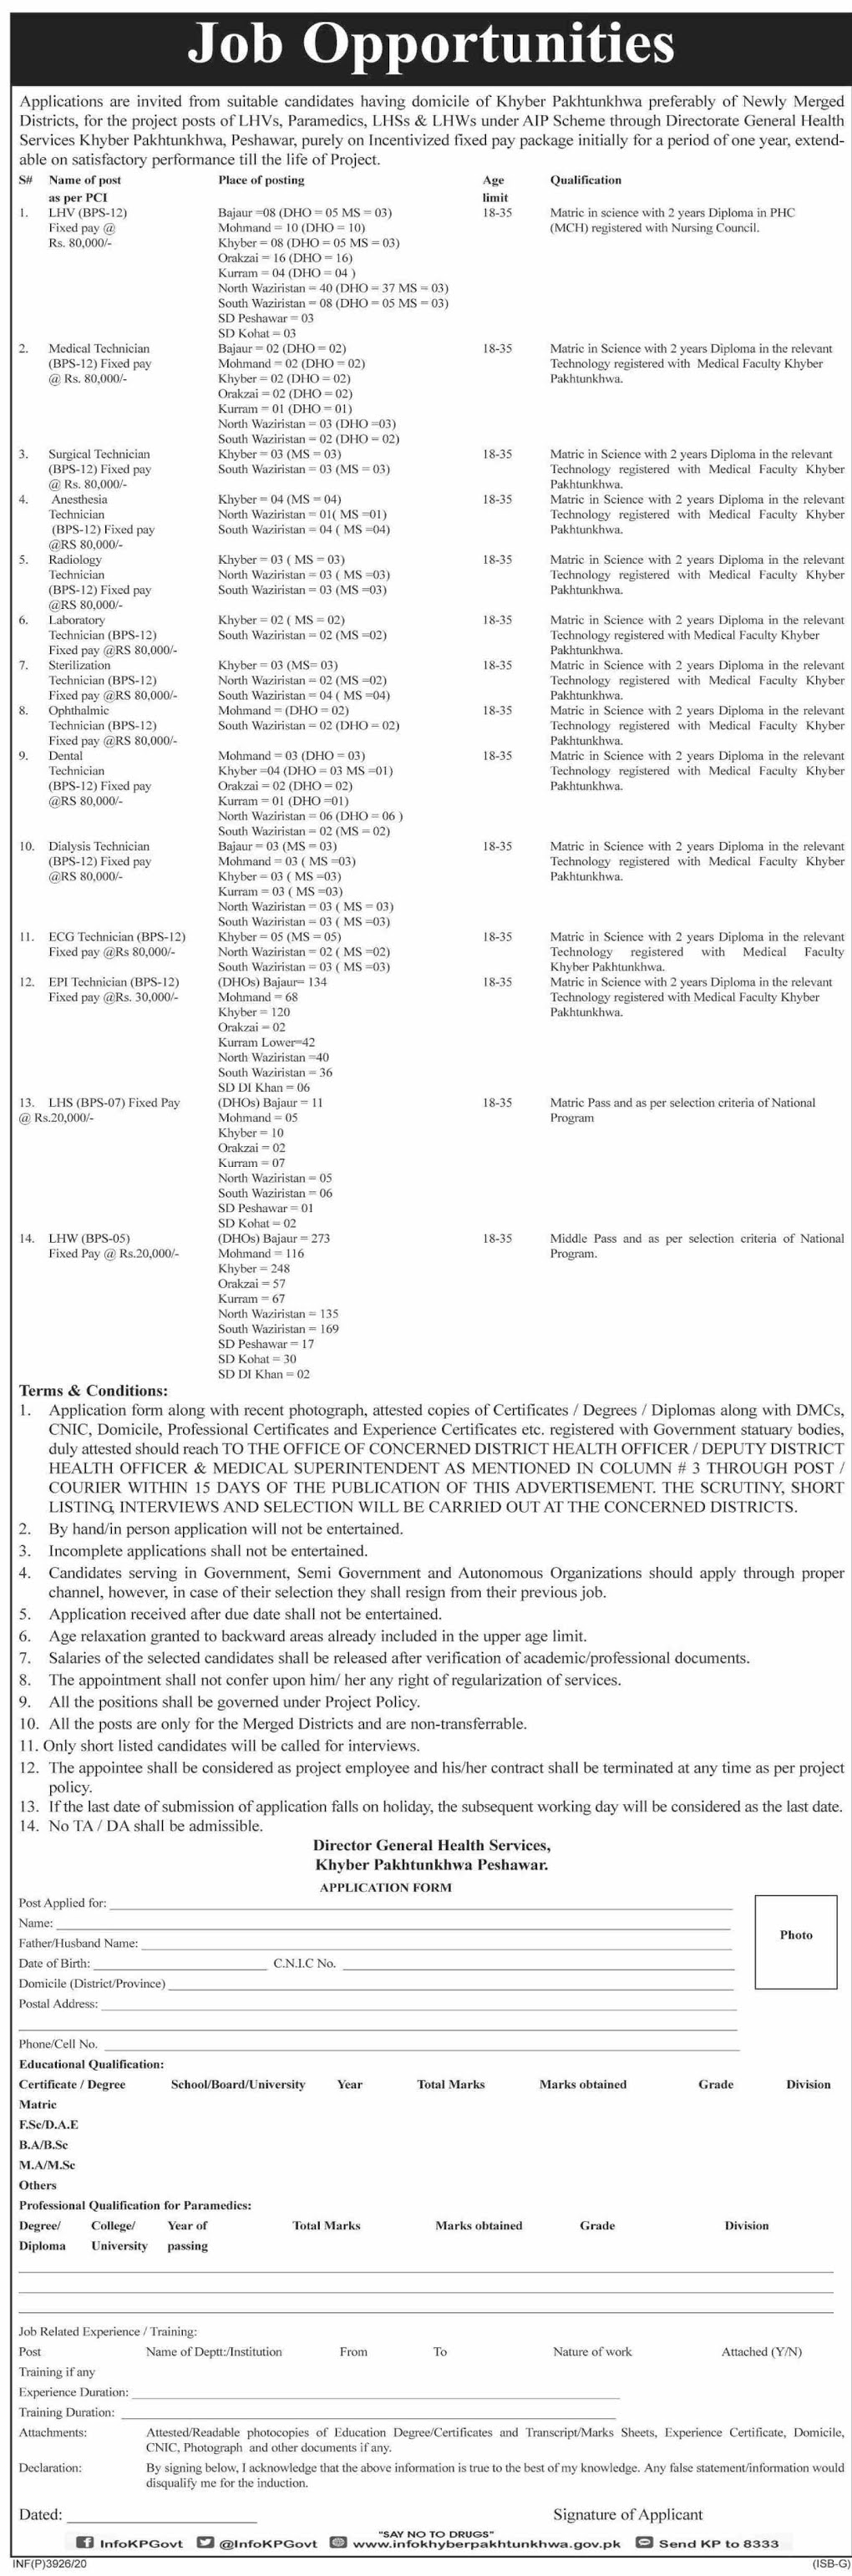 Directorate General Health Services Job Advertisement For Male and Female in Pakistan Jobs 2021-2022